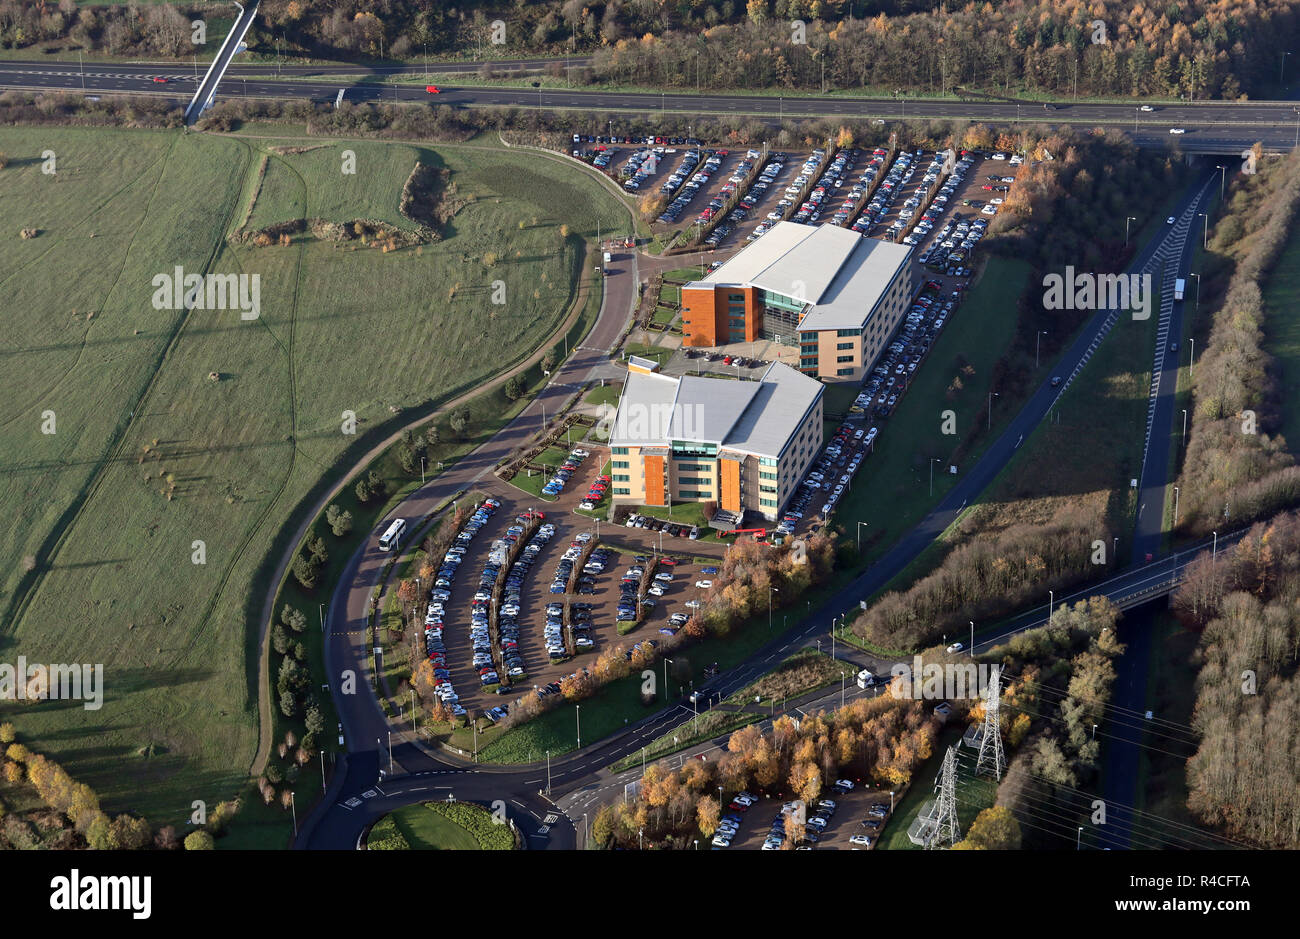 aerial view of two office buildings (including Lowell Financial Ltd), on Savannah Way, Leeds Valley Park, Leeds 10, West Yorkshire - Stock Image